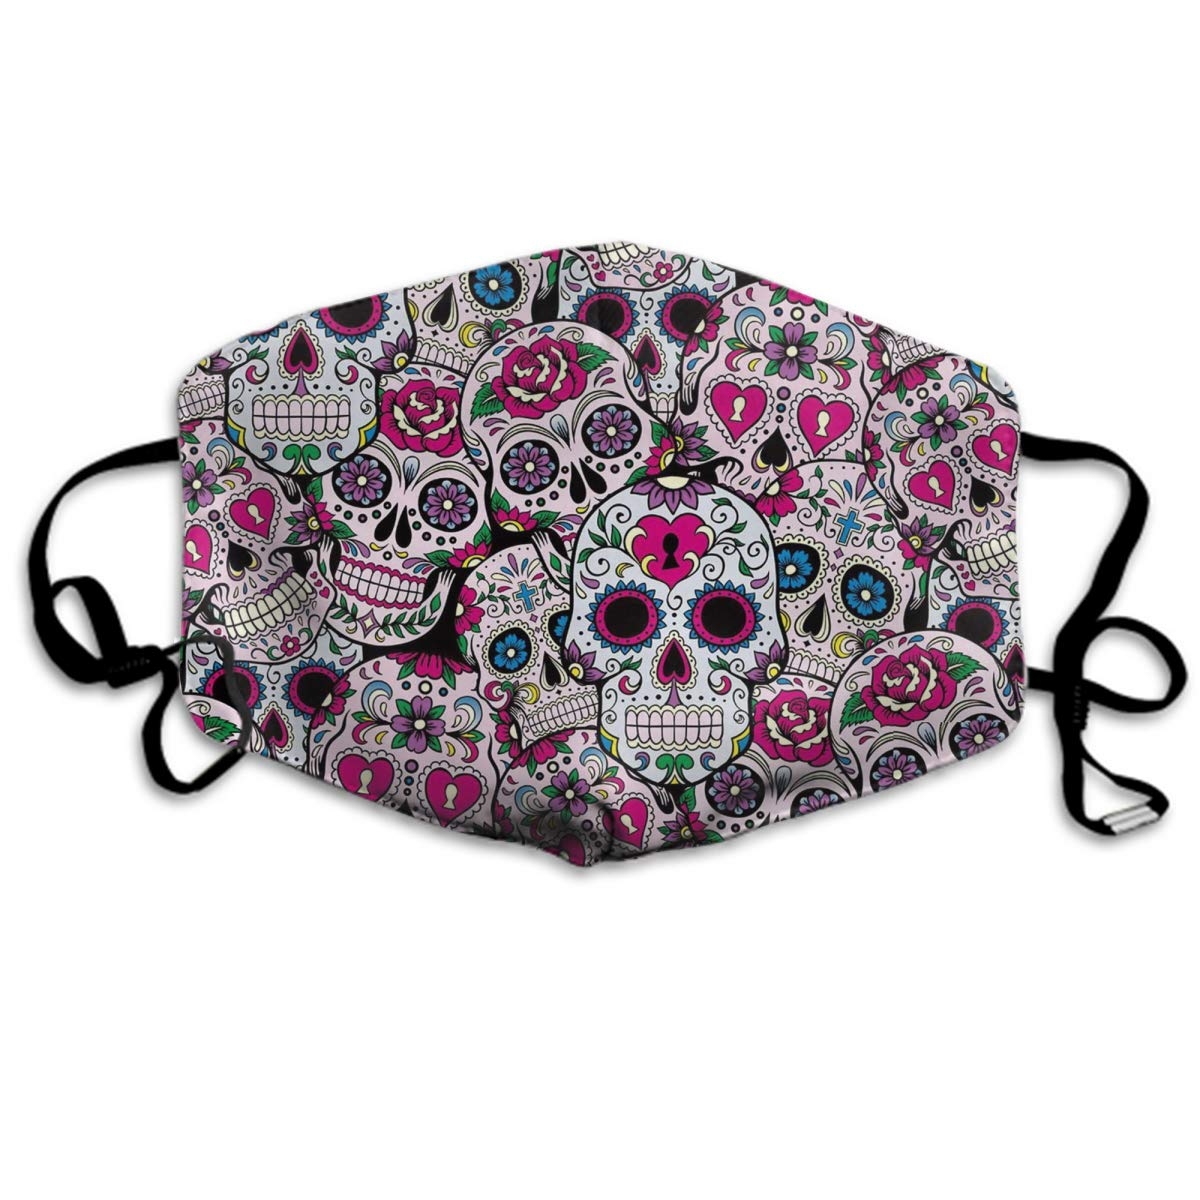 Comfortable Two Layer Dust Mask, Soft Mexican Sugar Skull Pattern Face Mask Cover Mouth For Adults And Teens